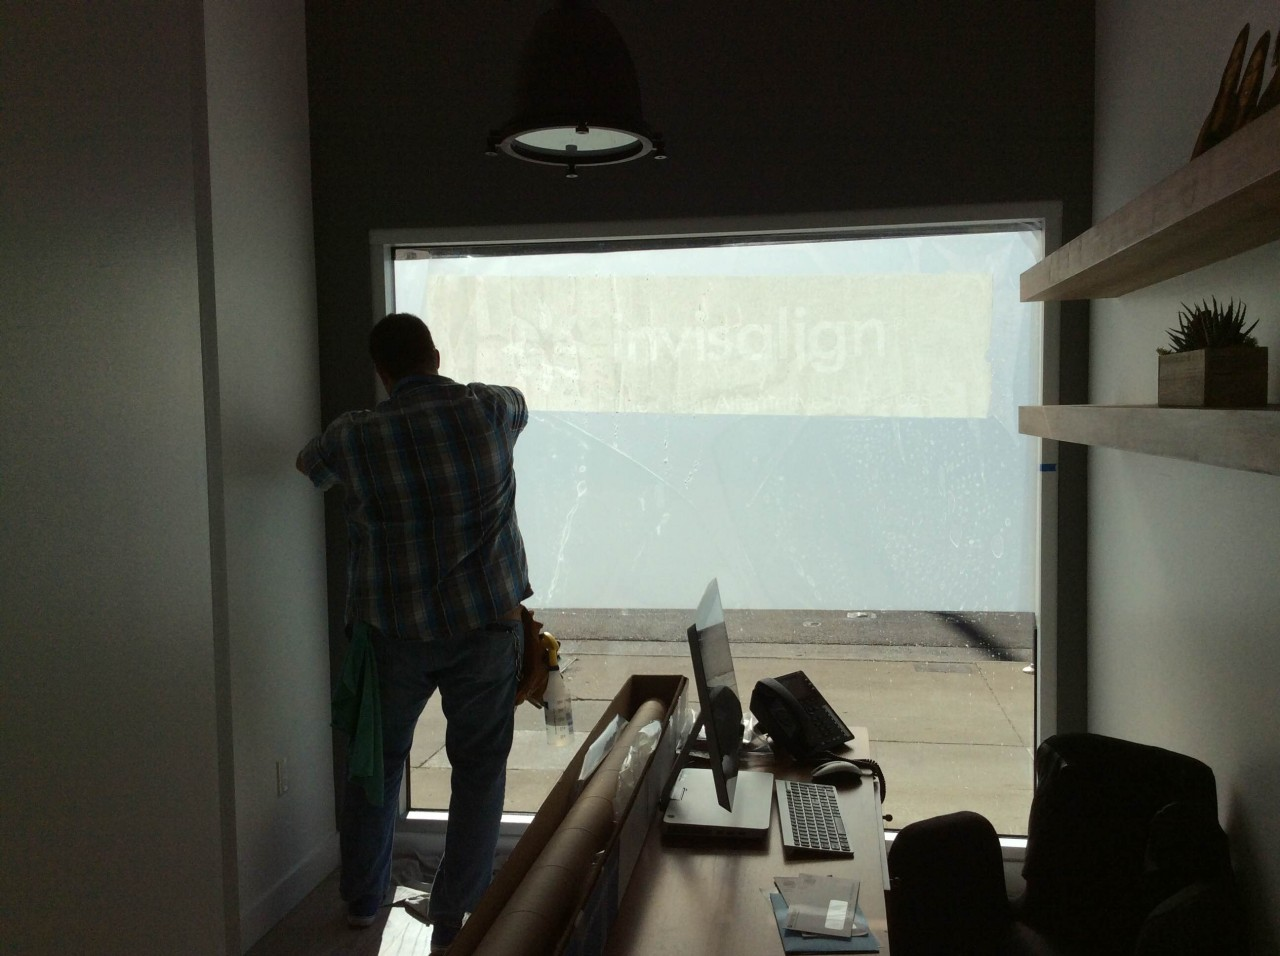 The custom cut window film is first applied at eye leveled. Then positioned into place on the dentists office window.